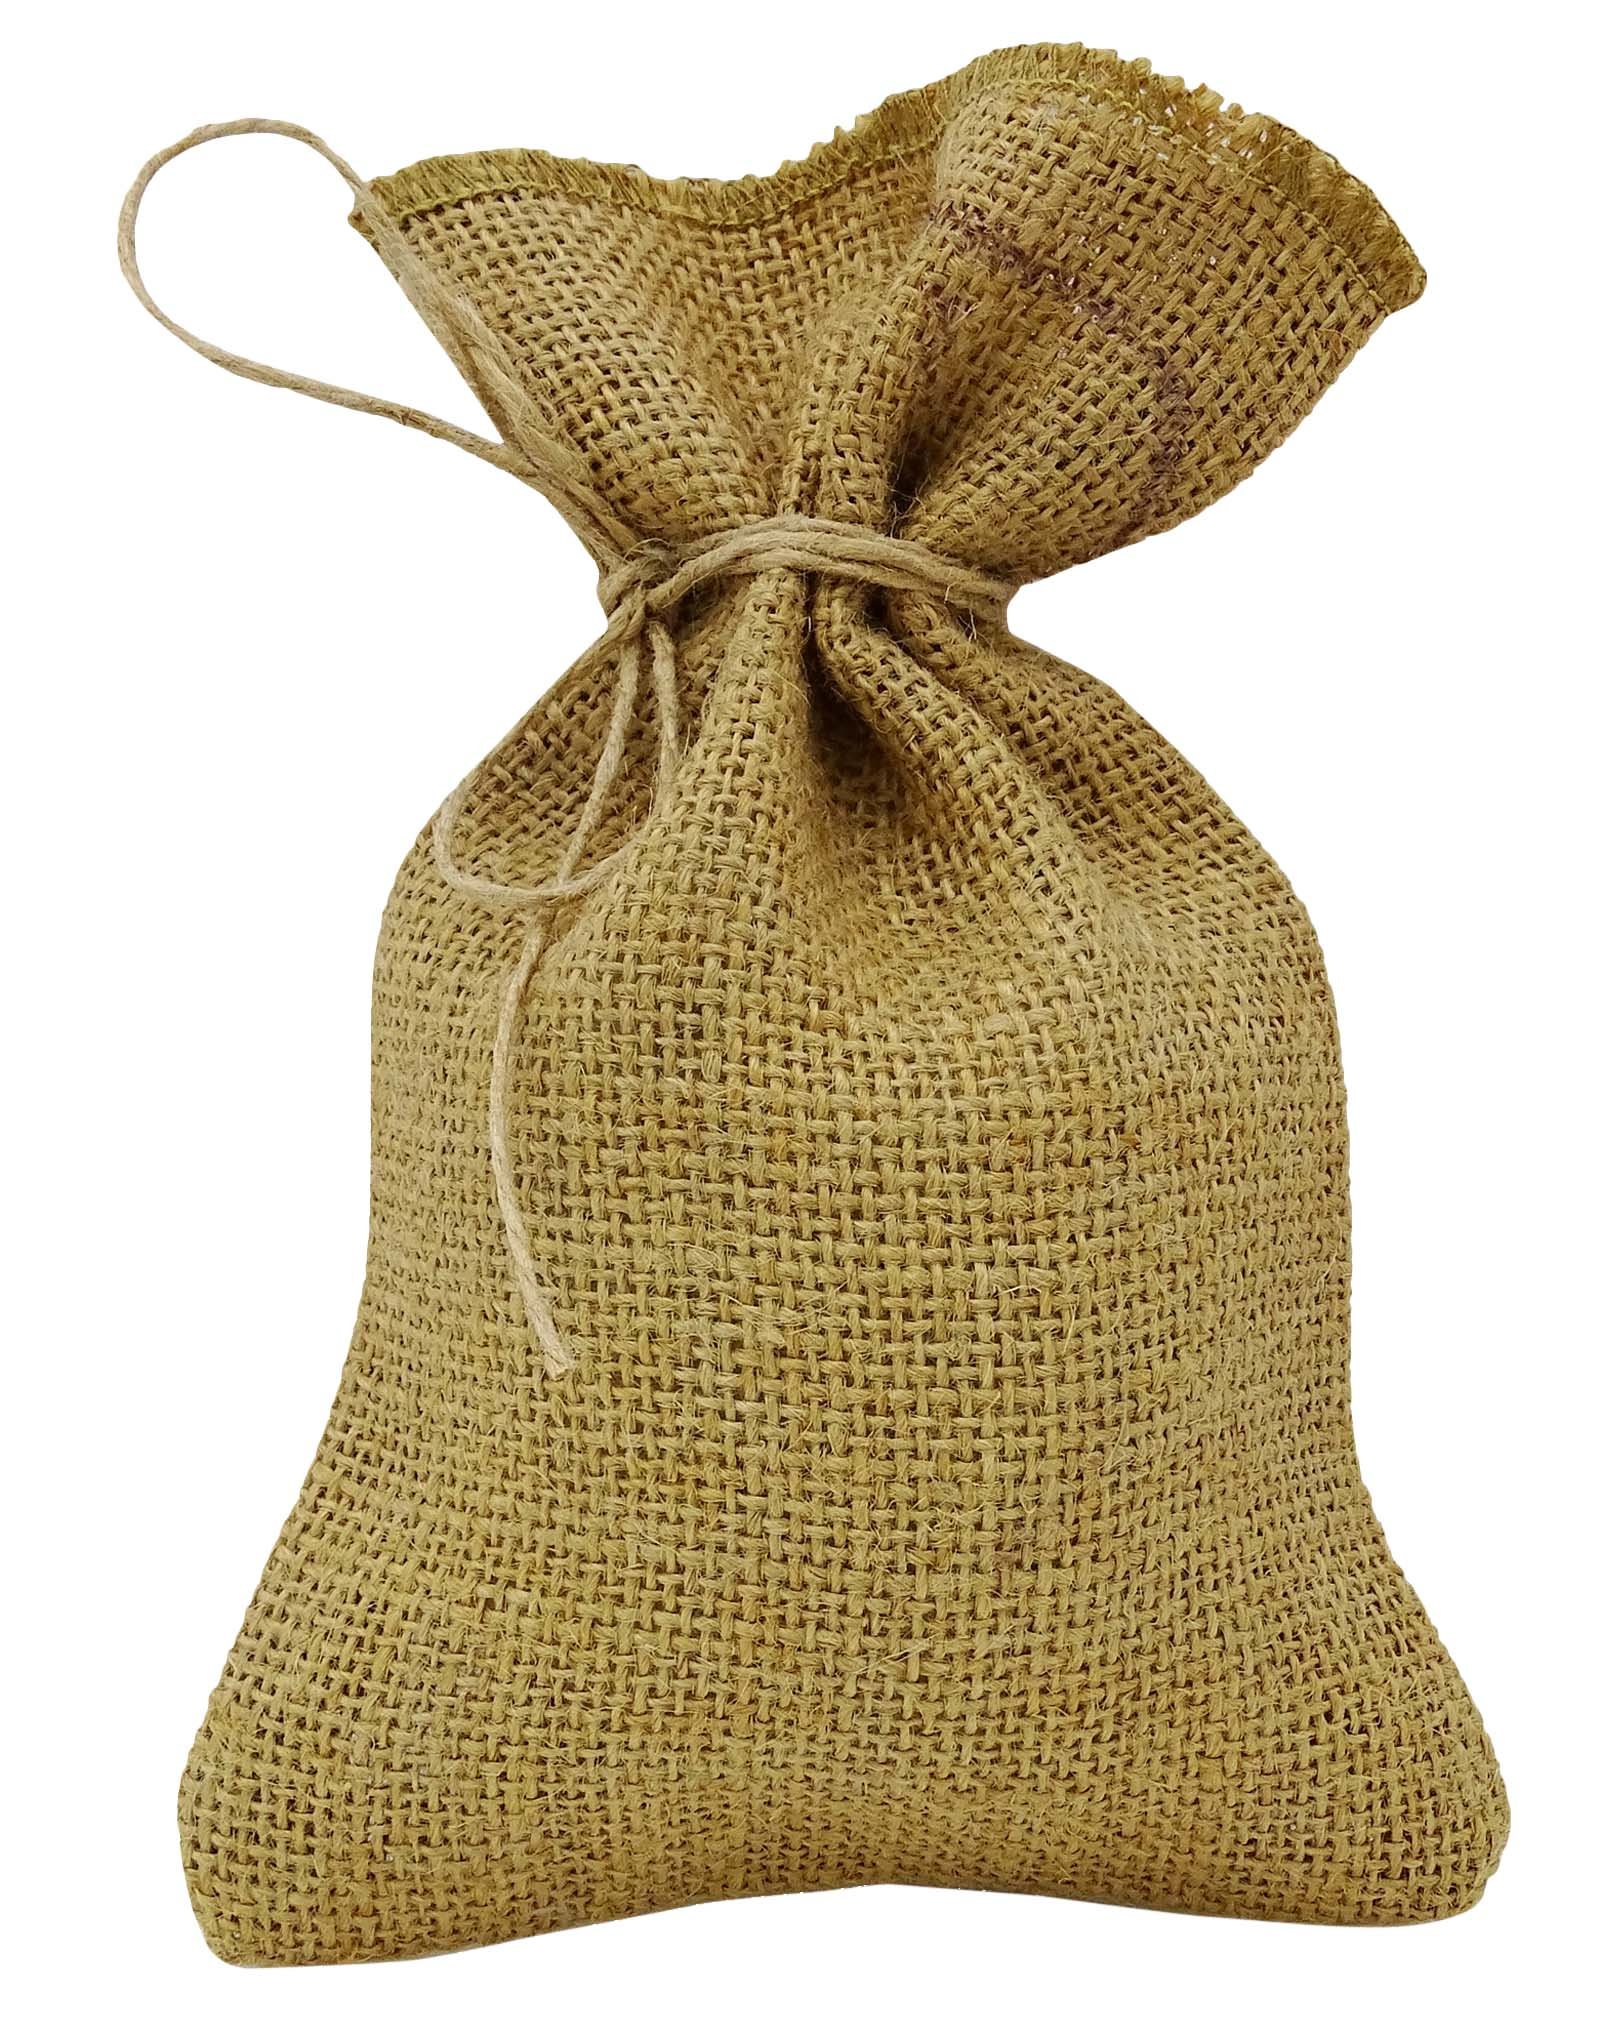 50 Natural Rustic Jute Drawstring Favor Bag Wedding Party Thank You Small Gift Sack Pouches 5'' x 7'' inches